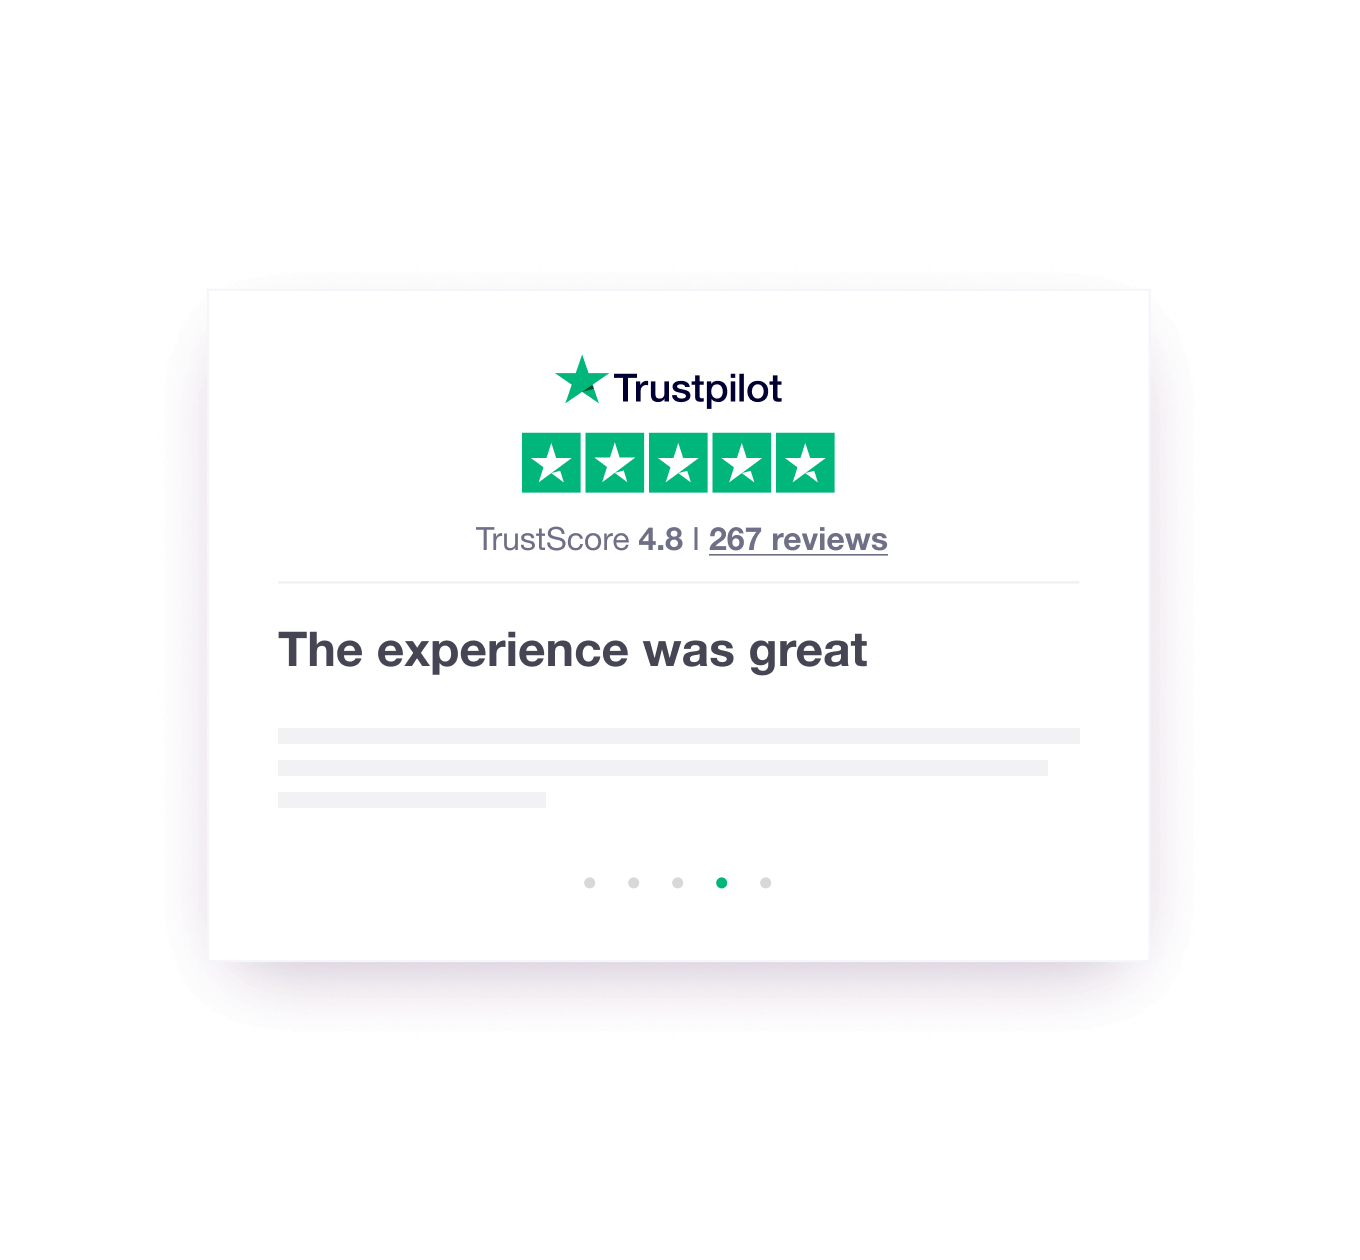 Illustration of a Trustpilot website widget called a TrustBox